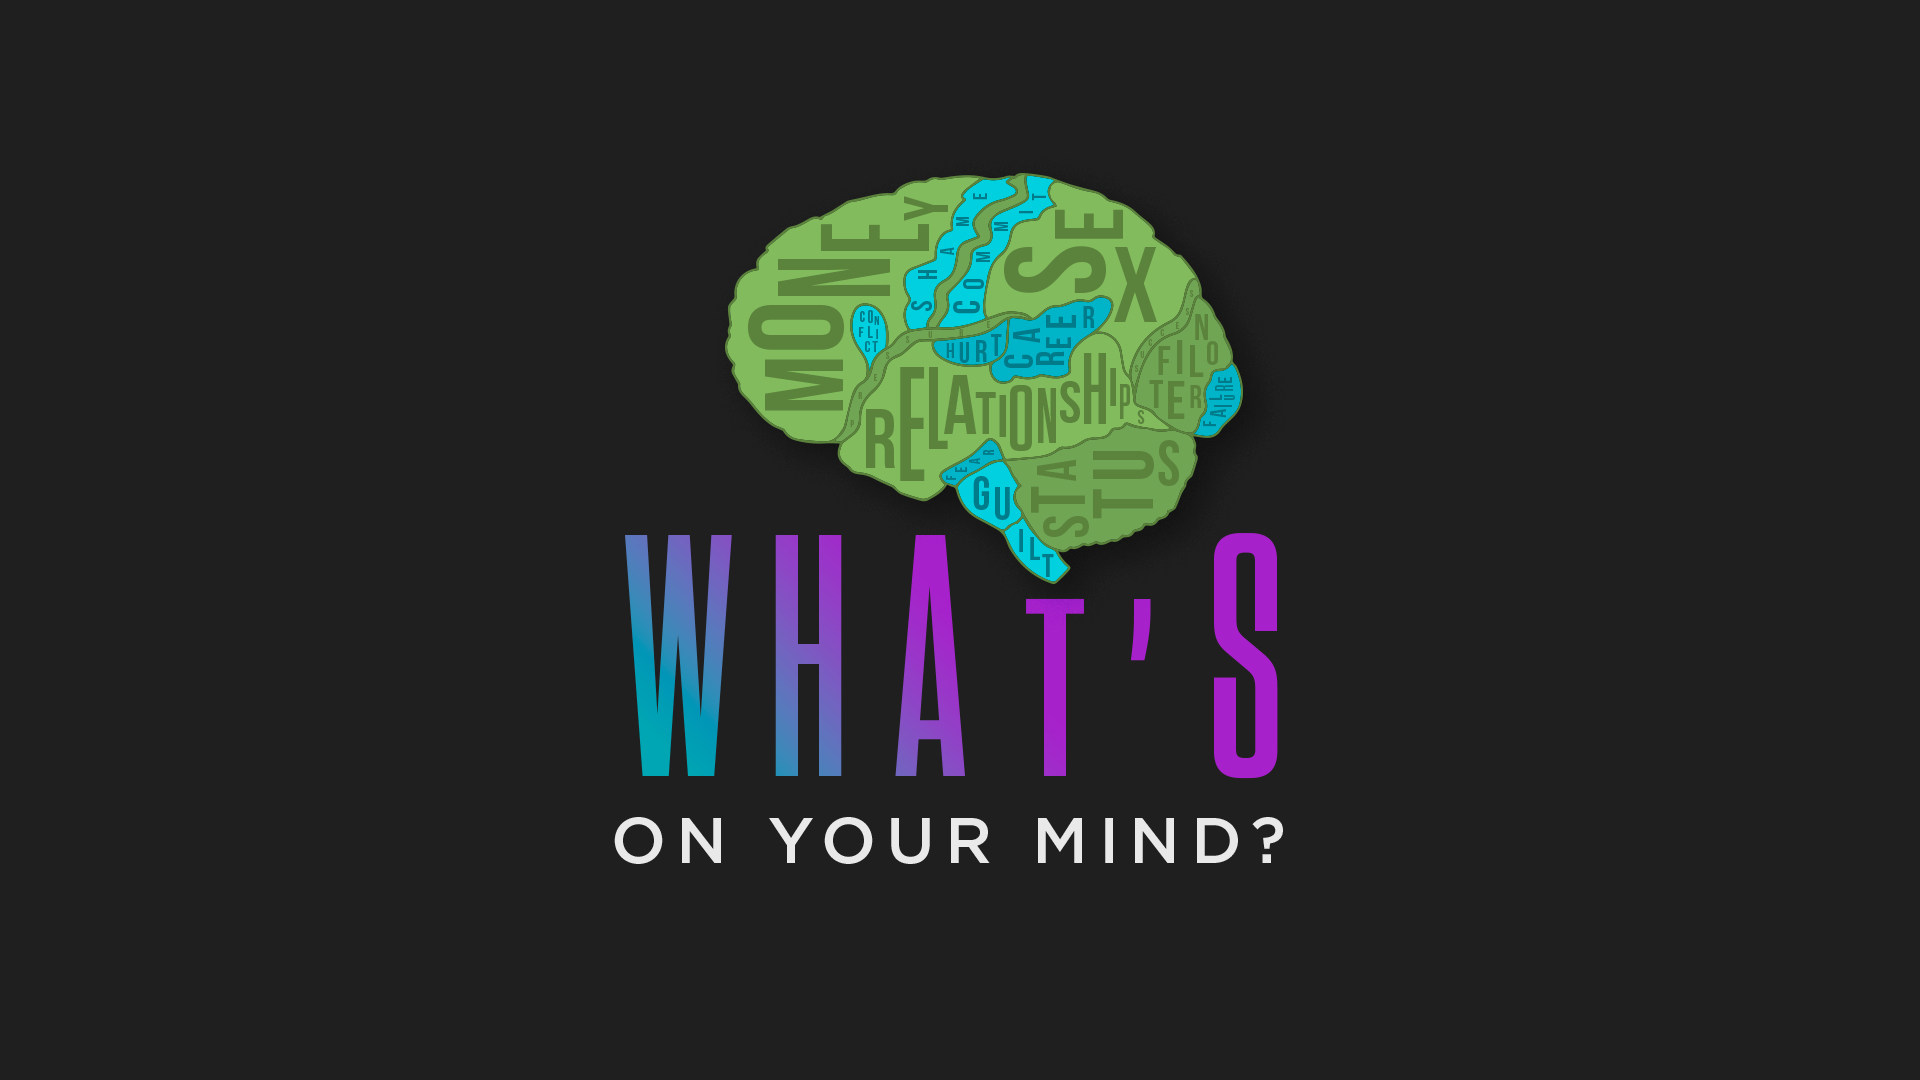 Whats On Your Mind